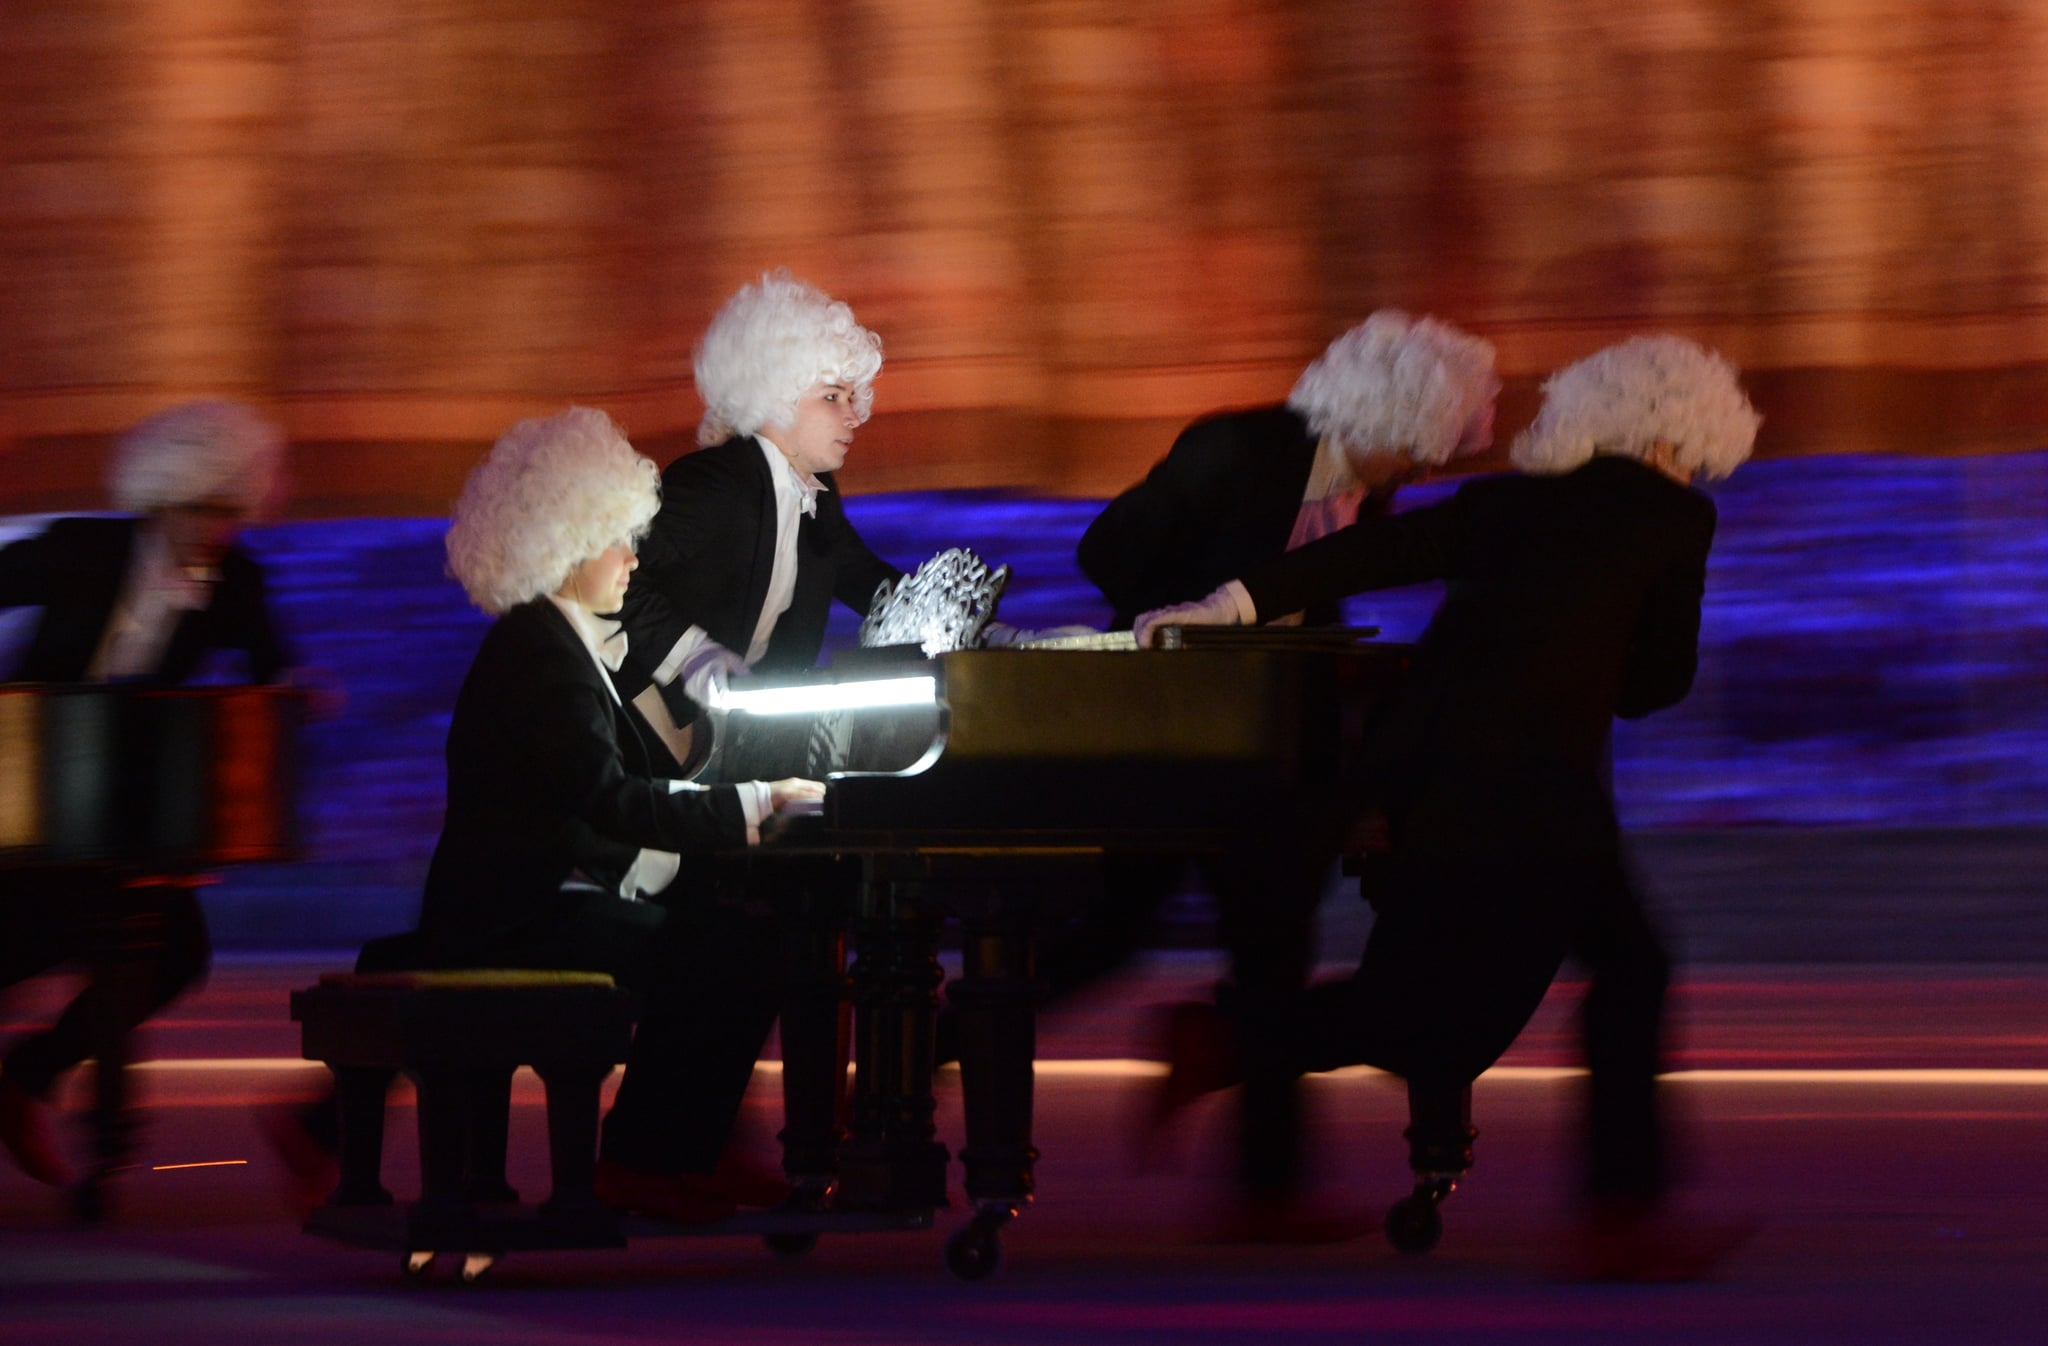 Dancers pulled pianos into the center of the stadium for Russian pianist Denis Matsuev's performance.